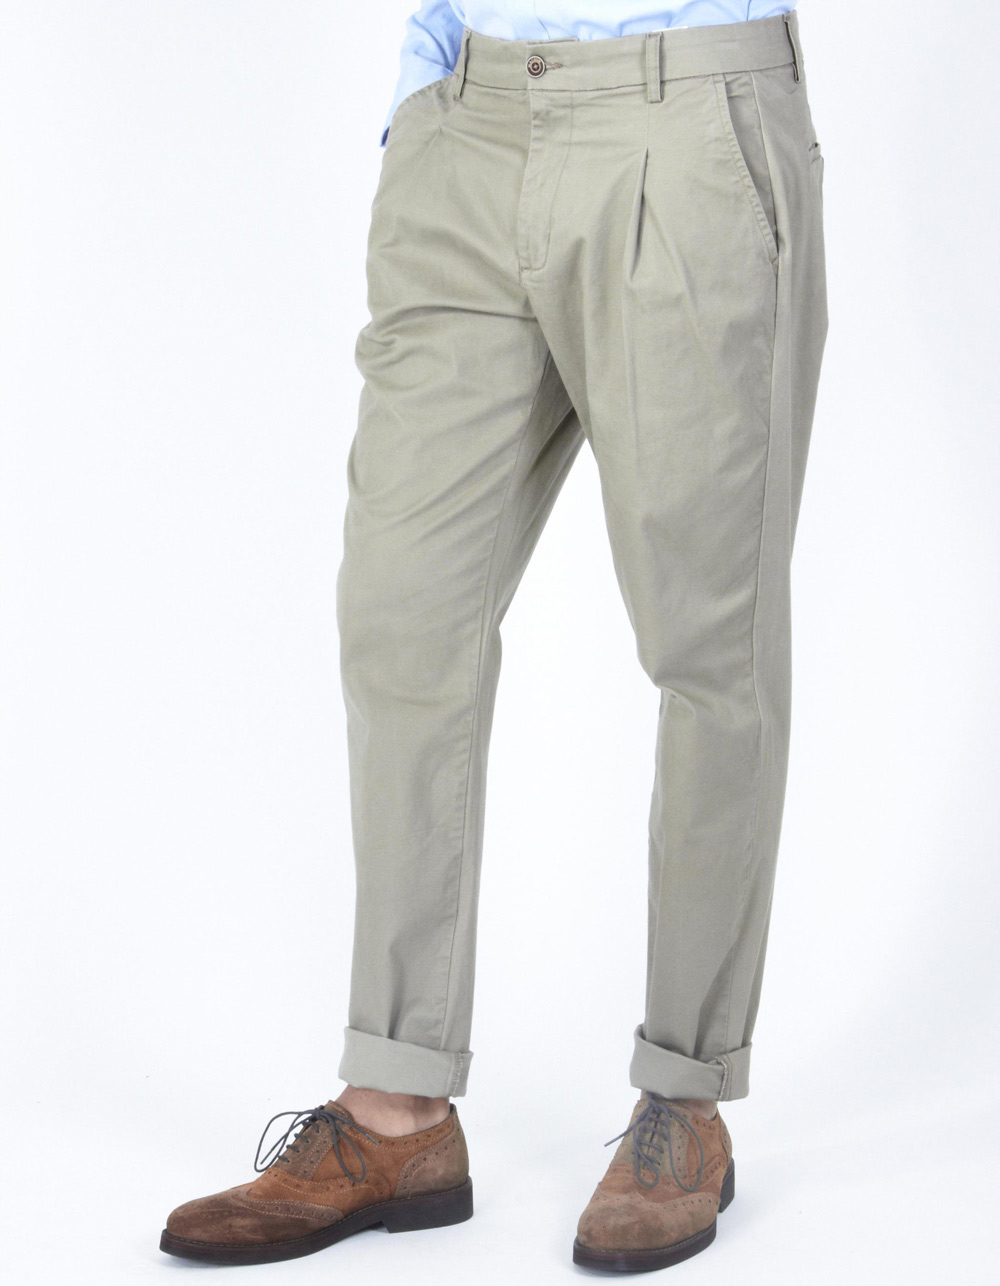 Beige trousers with darts